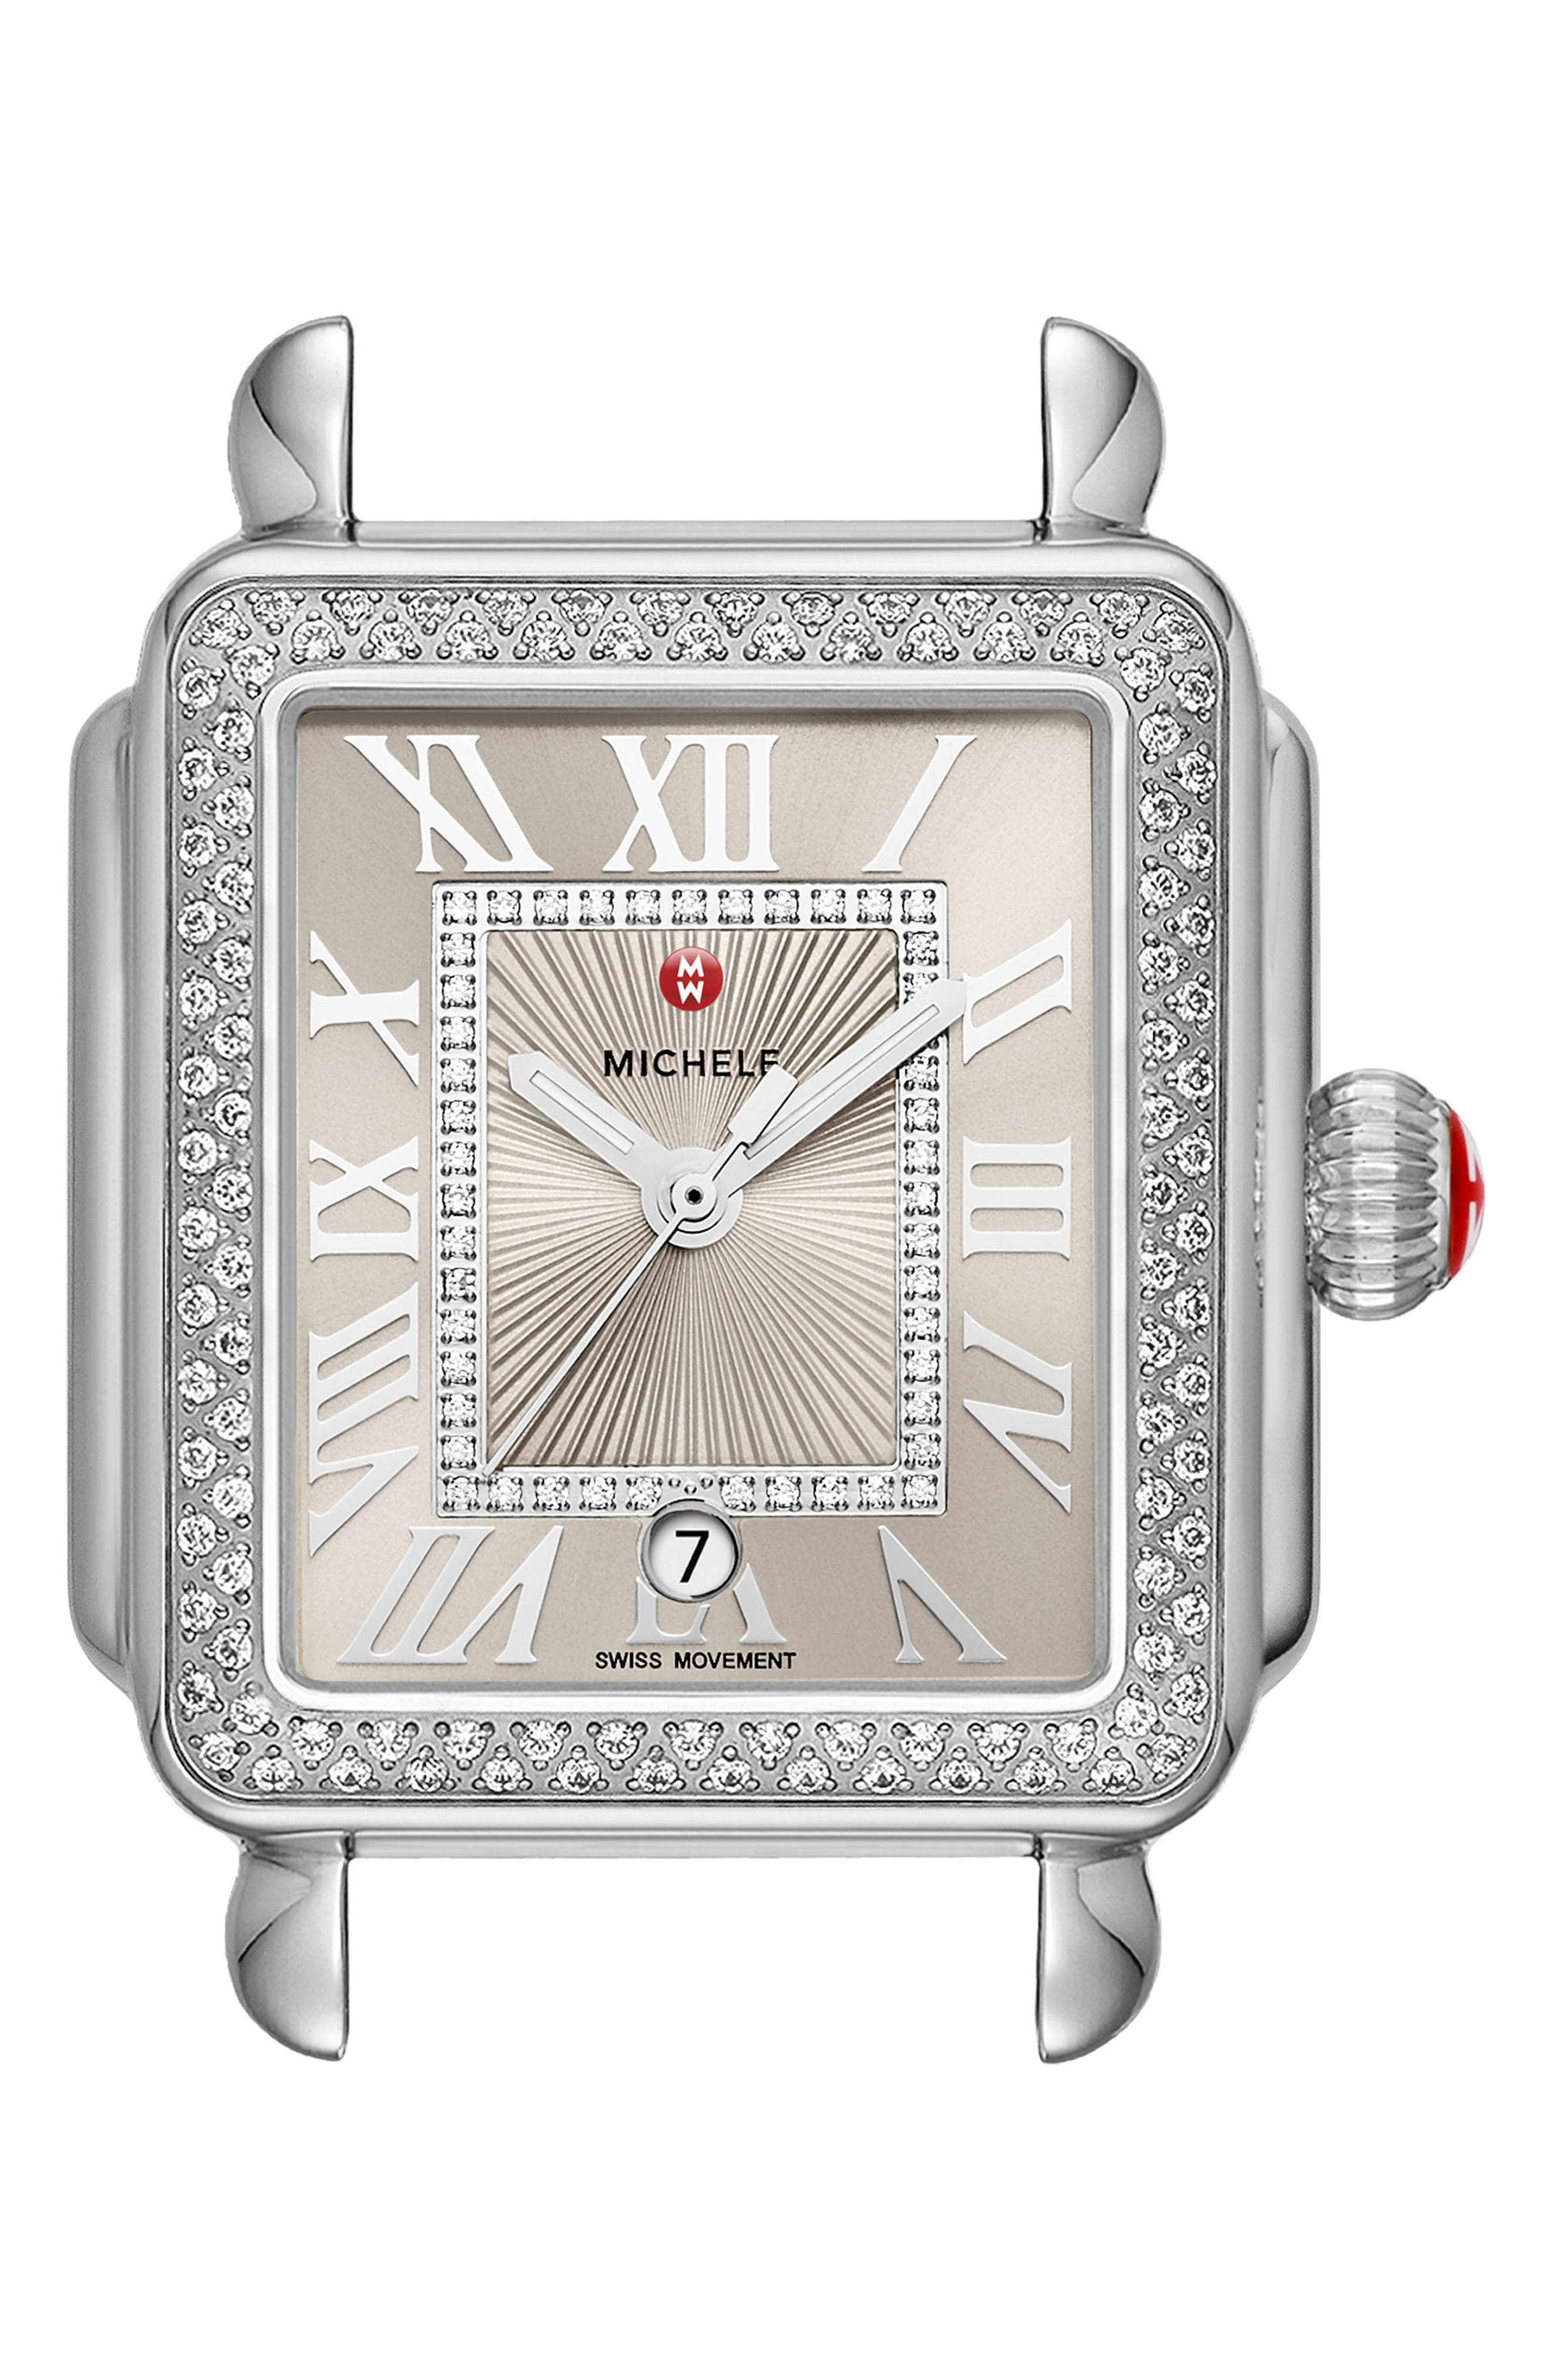 Main Image - MICHELE Deco Madison Diamond Dial Watch Case, 33mm x 35mm